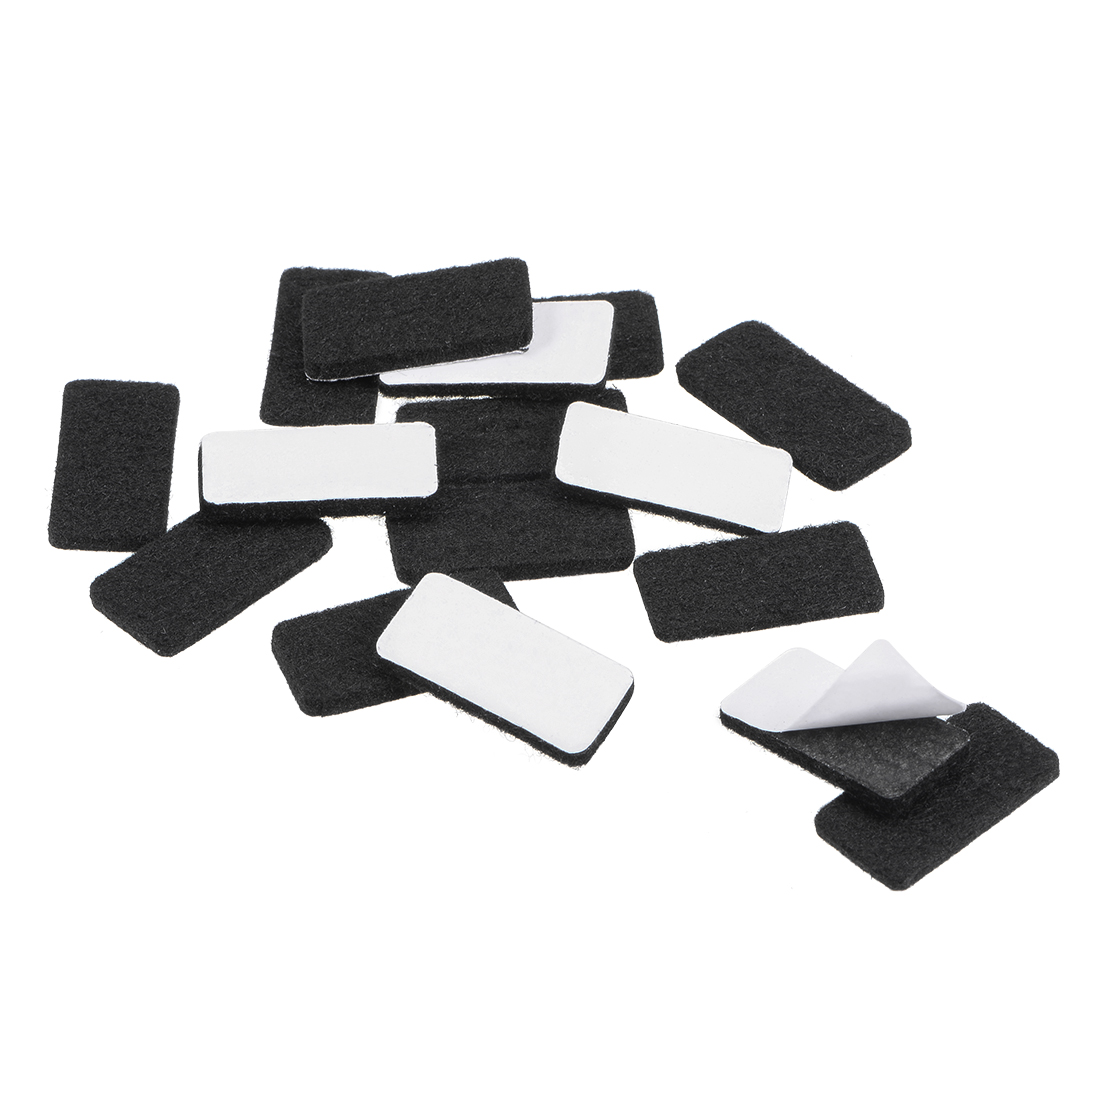 Furniture Pads 30mm x 15mm Adhesive Felt Pads 3mm Thick Black 36Pcs